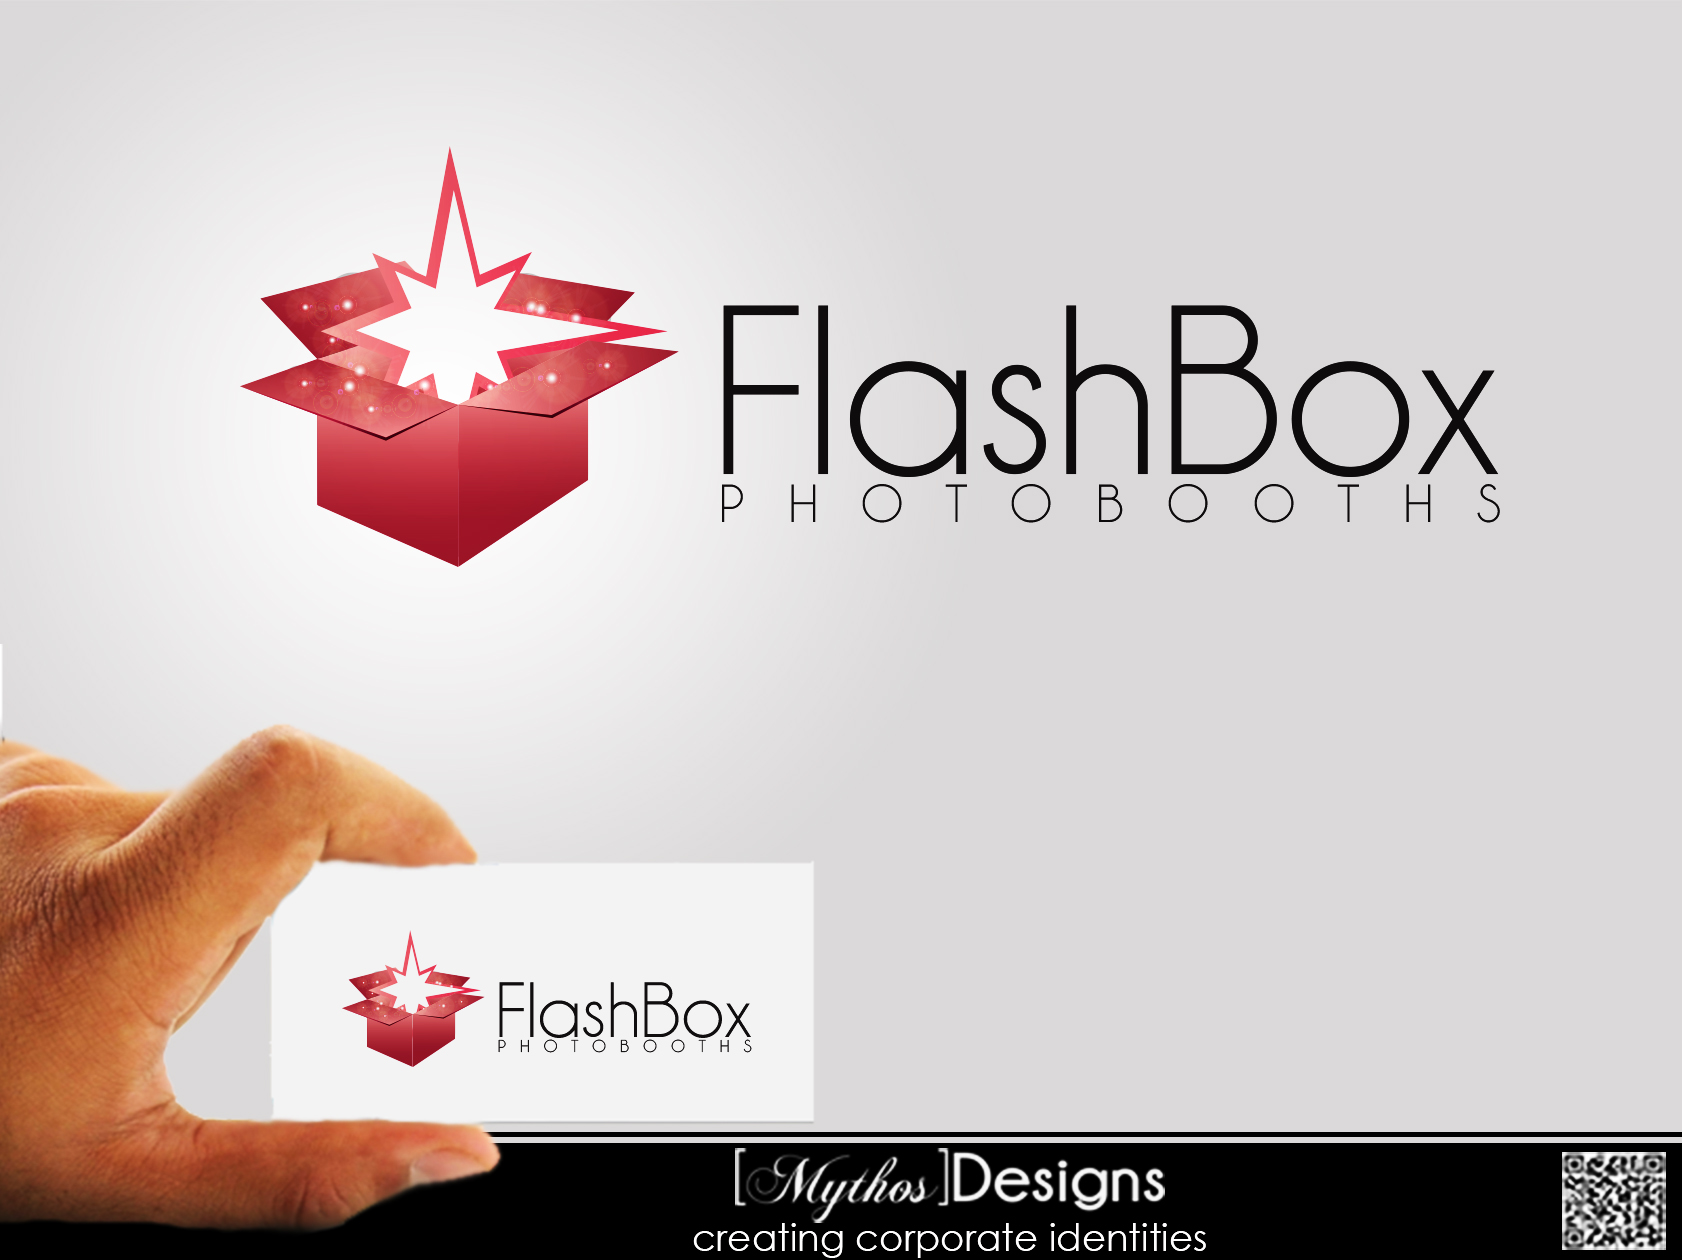 Logo Design by Mythos Designs - Entry No. 11 in the Logo Design Contest New Logo Design for FlashBox Photobooths.